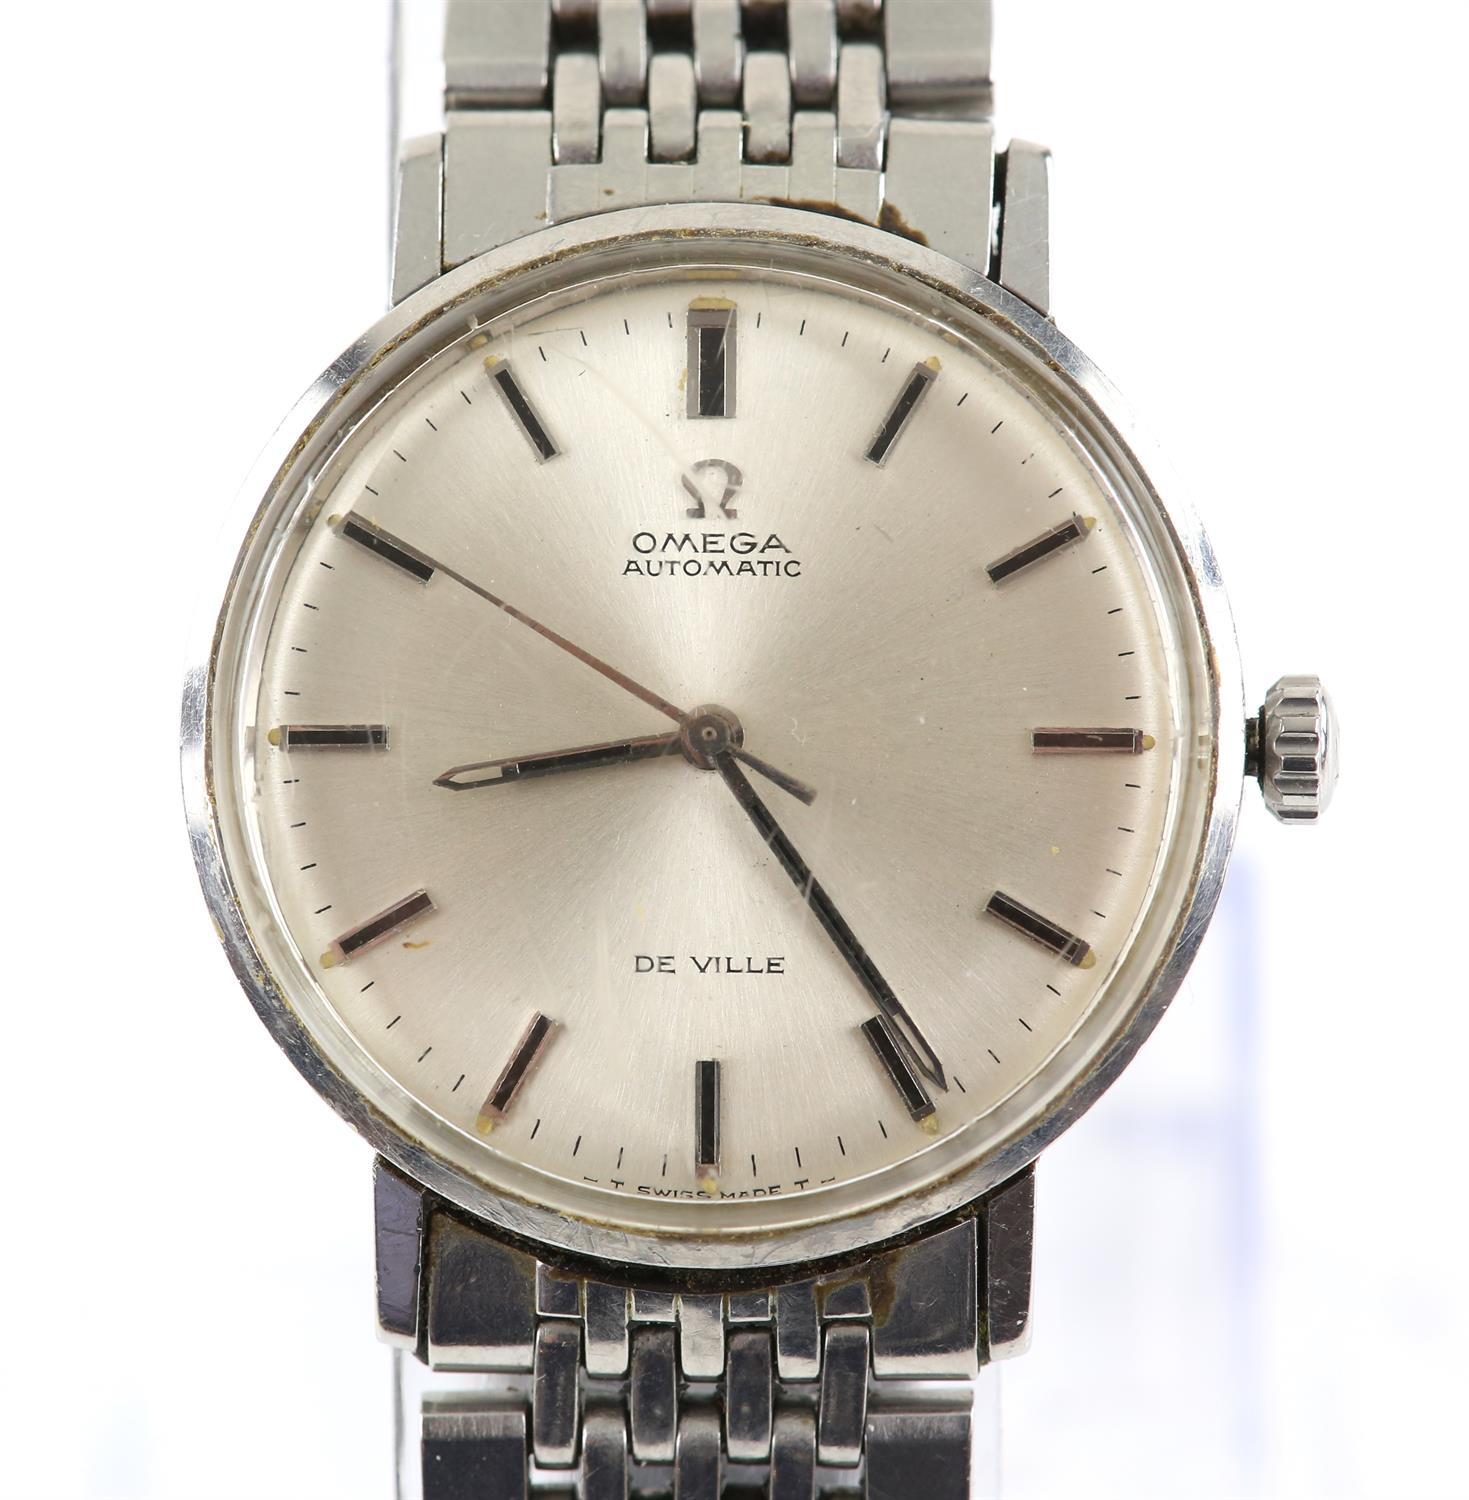 Omega, A Gentleman's Seamaster De Ville, stainless steel wristwatch, the signed silvered dial with